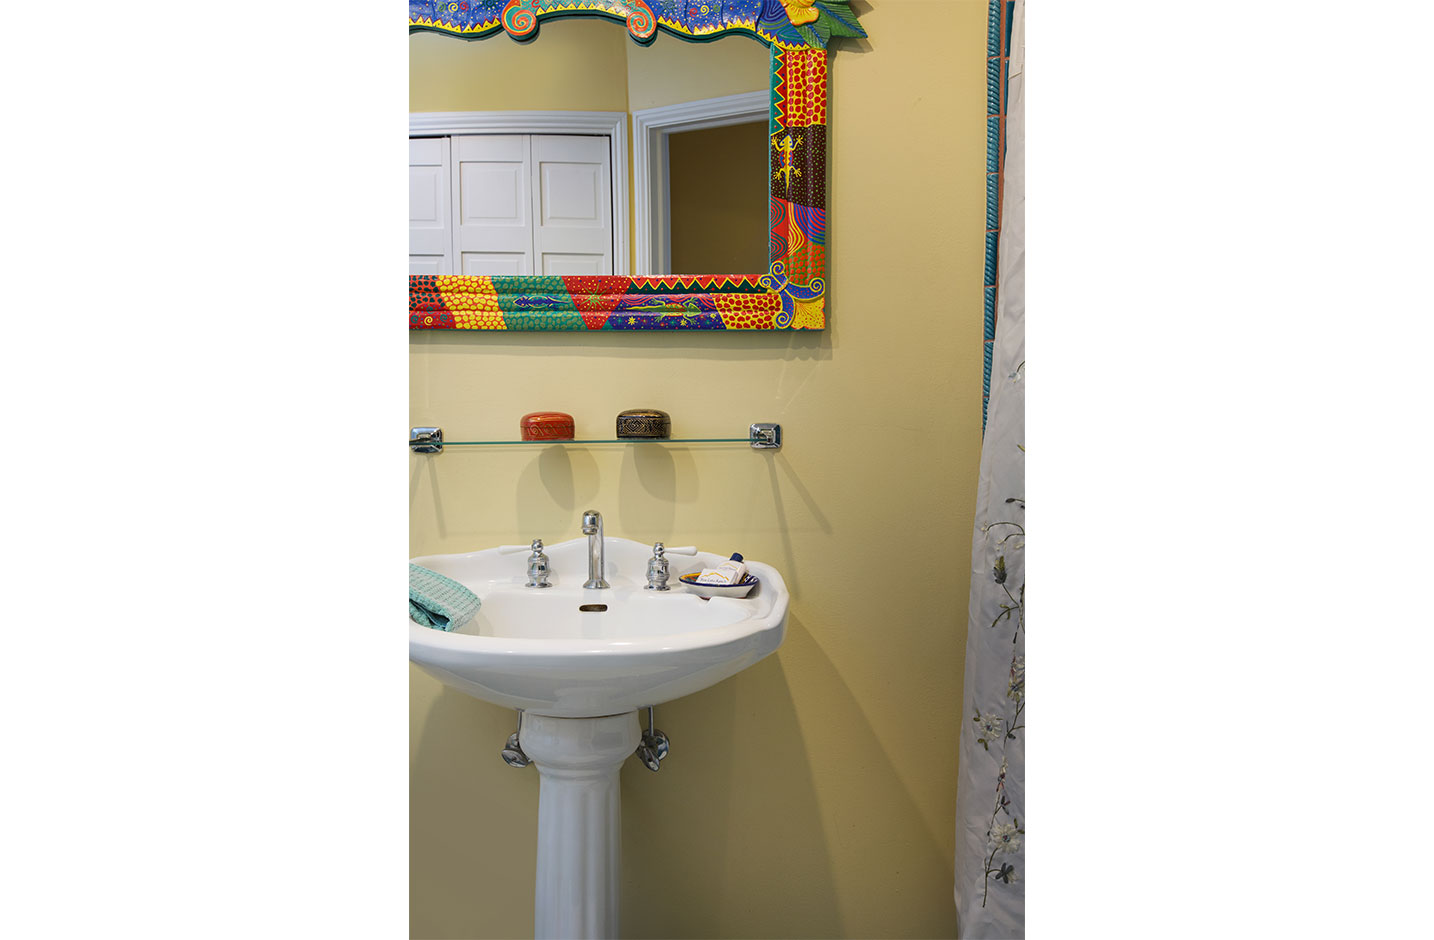 Bathroom sink with a colorful framed mirror